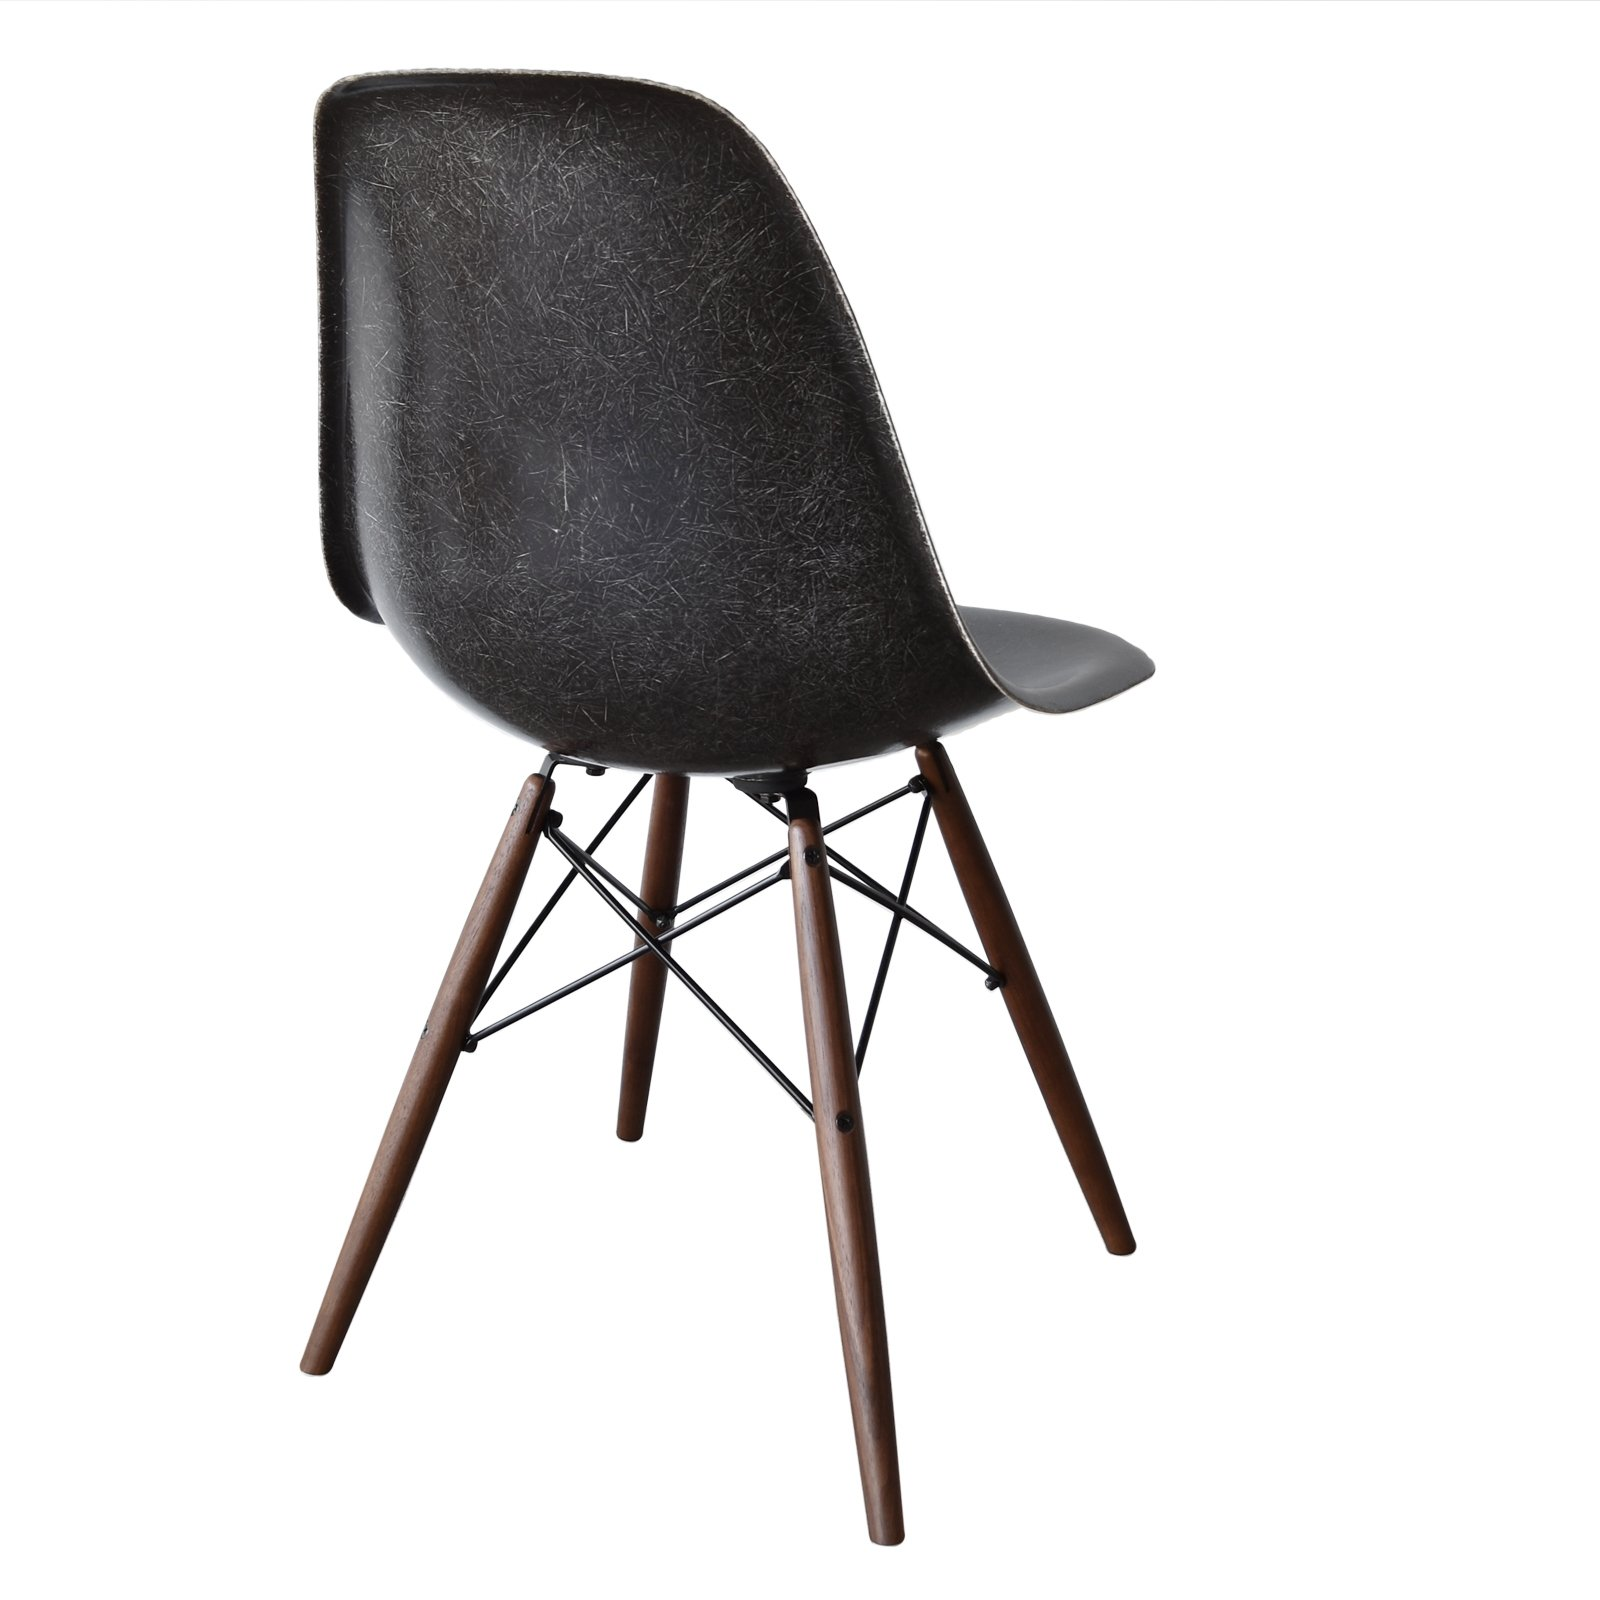 Dsw black dinner chair by charles ray eames for herman miller 1960s - Eames chair herman miller ...